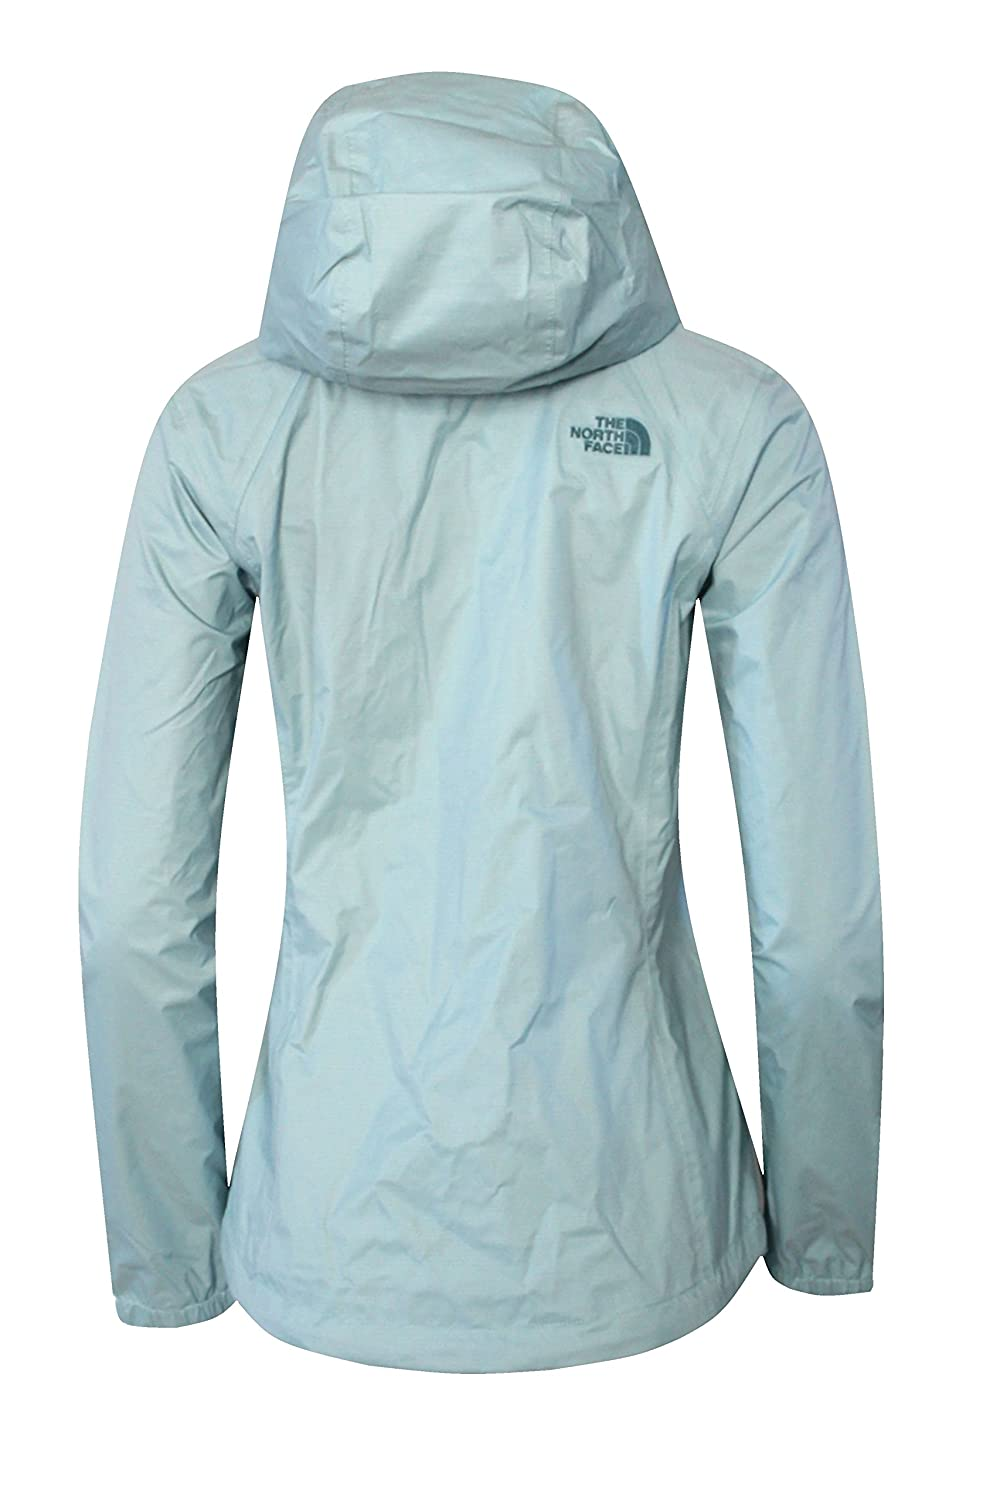 d3987e611 The North Face Womens TNF Black Boreal Rain Jacket prussian blue ...